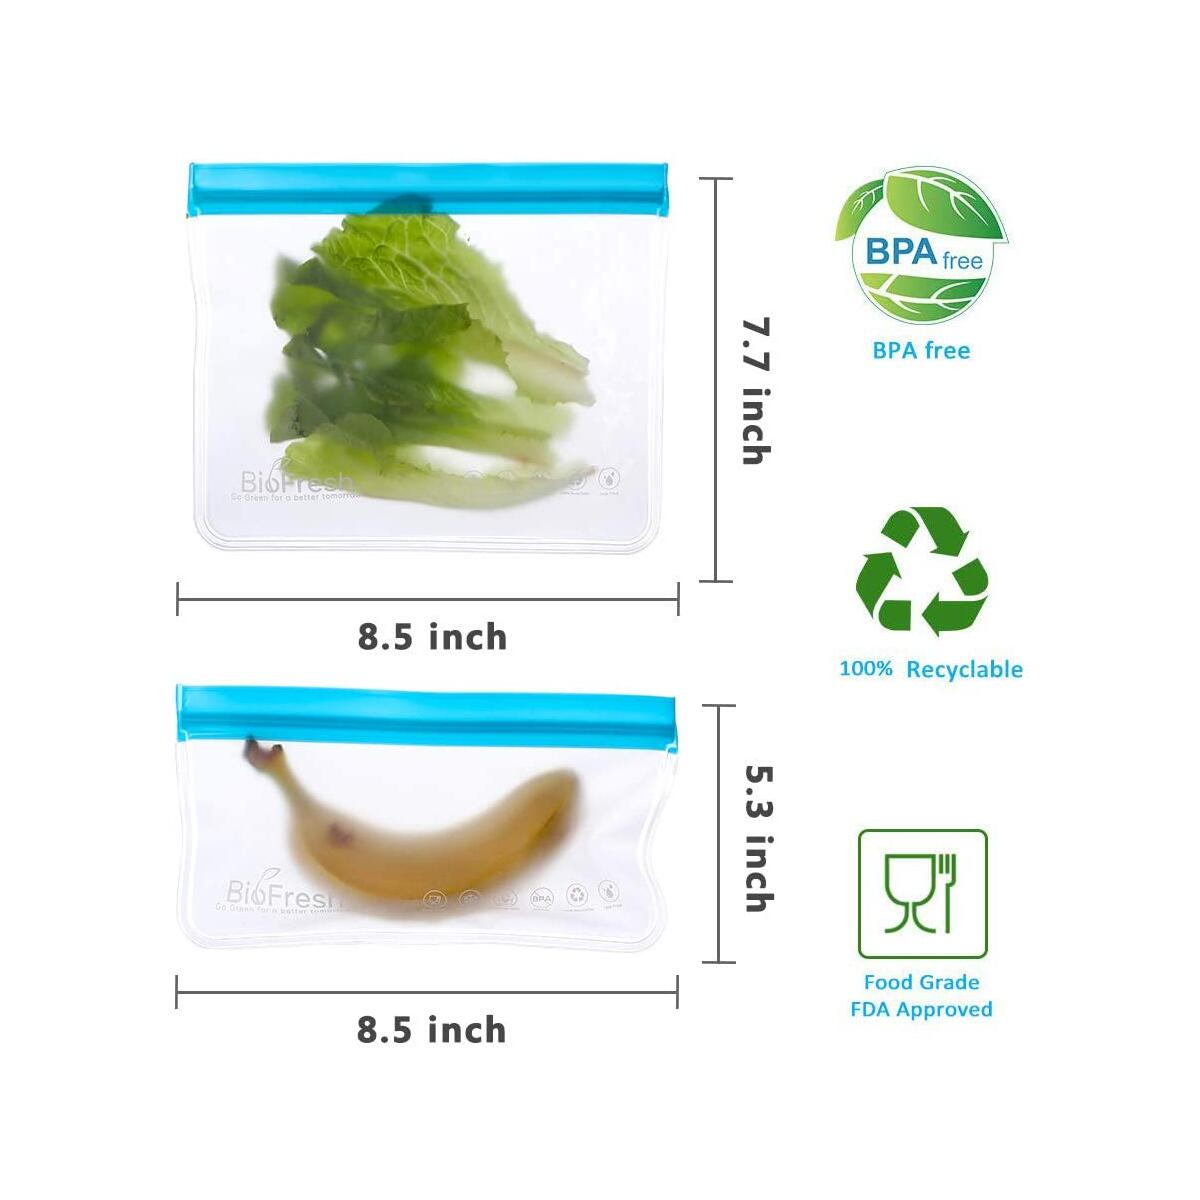 Reusable Snack Bags - 10 Pack BPA Free Freezer Bags(4 Reusable Snack Bags + 6 Reusable Sandwich Bags) Leakproof Silicone and Plastic Free PEVA Bags For Snack Meat Sandwich Lunch Food Travel